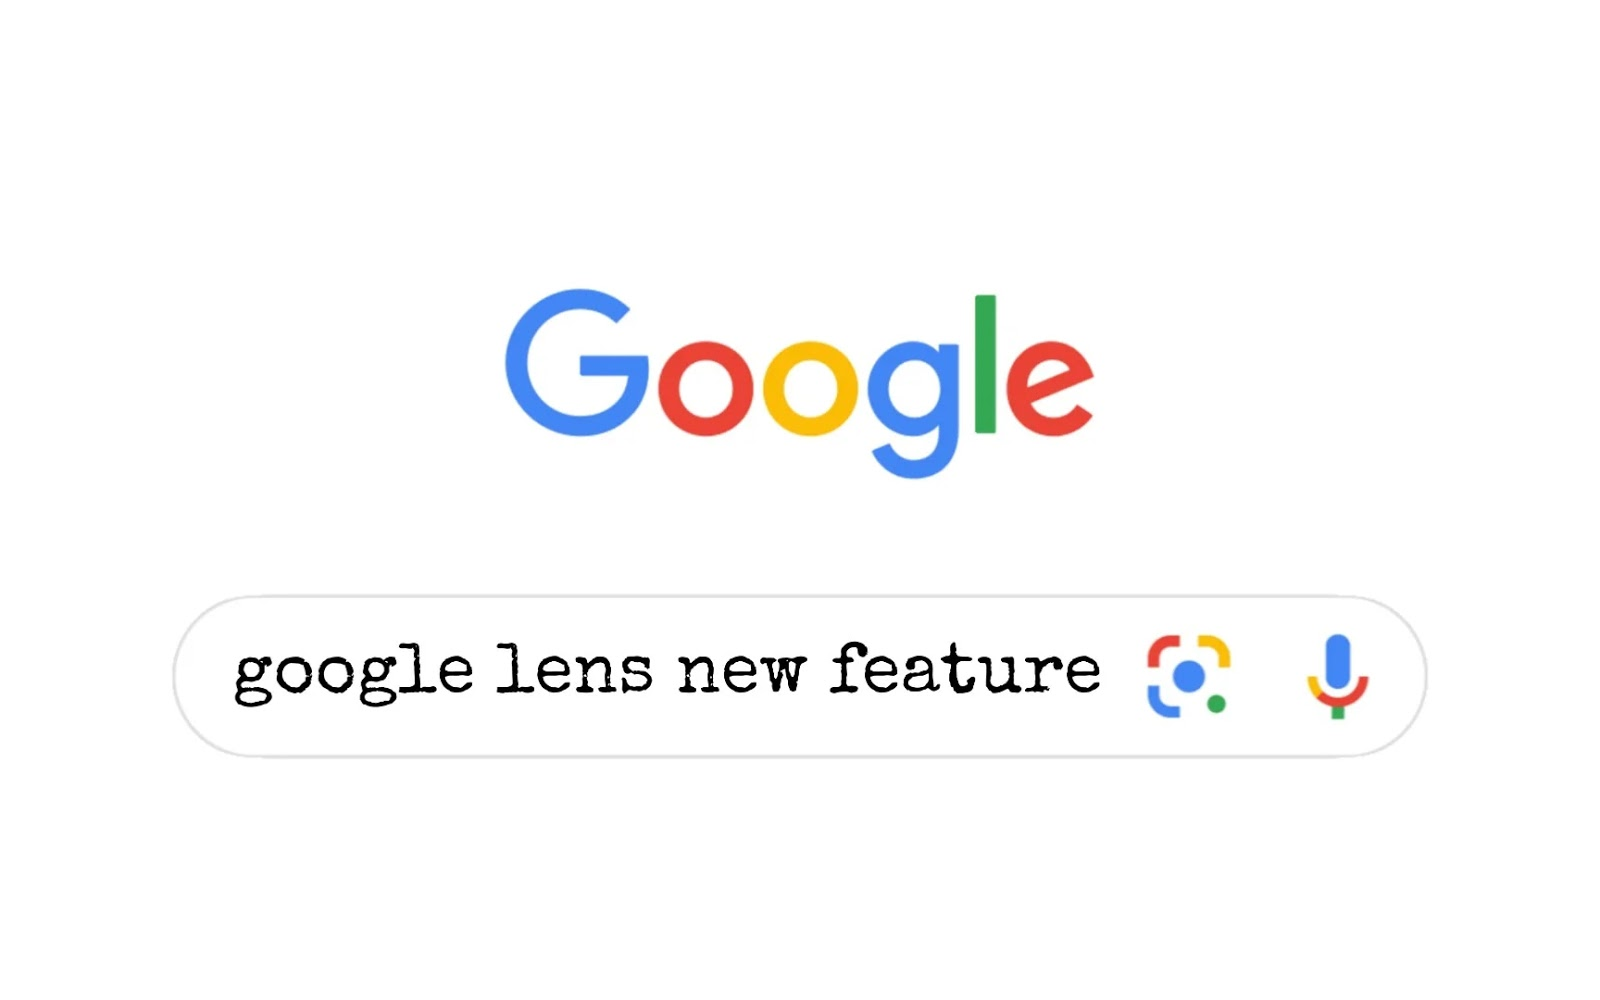 Google lens new feature